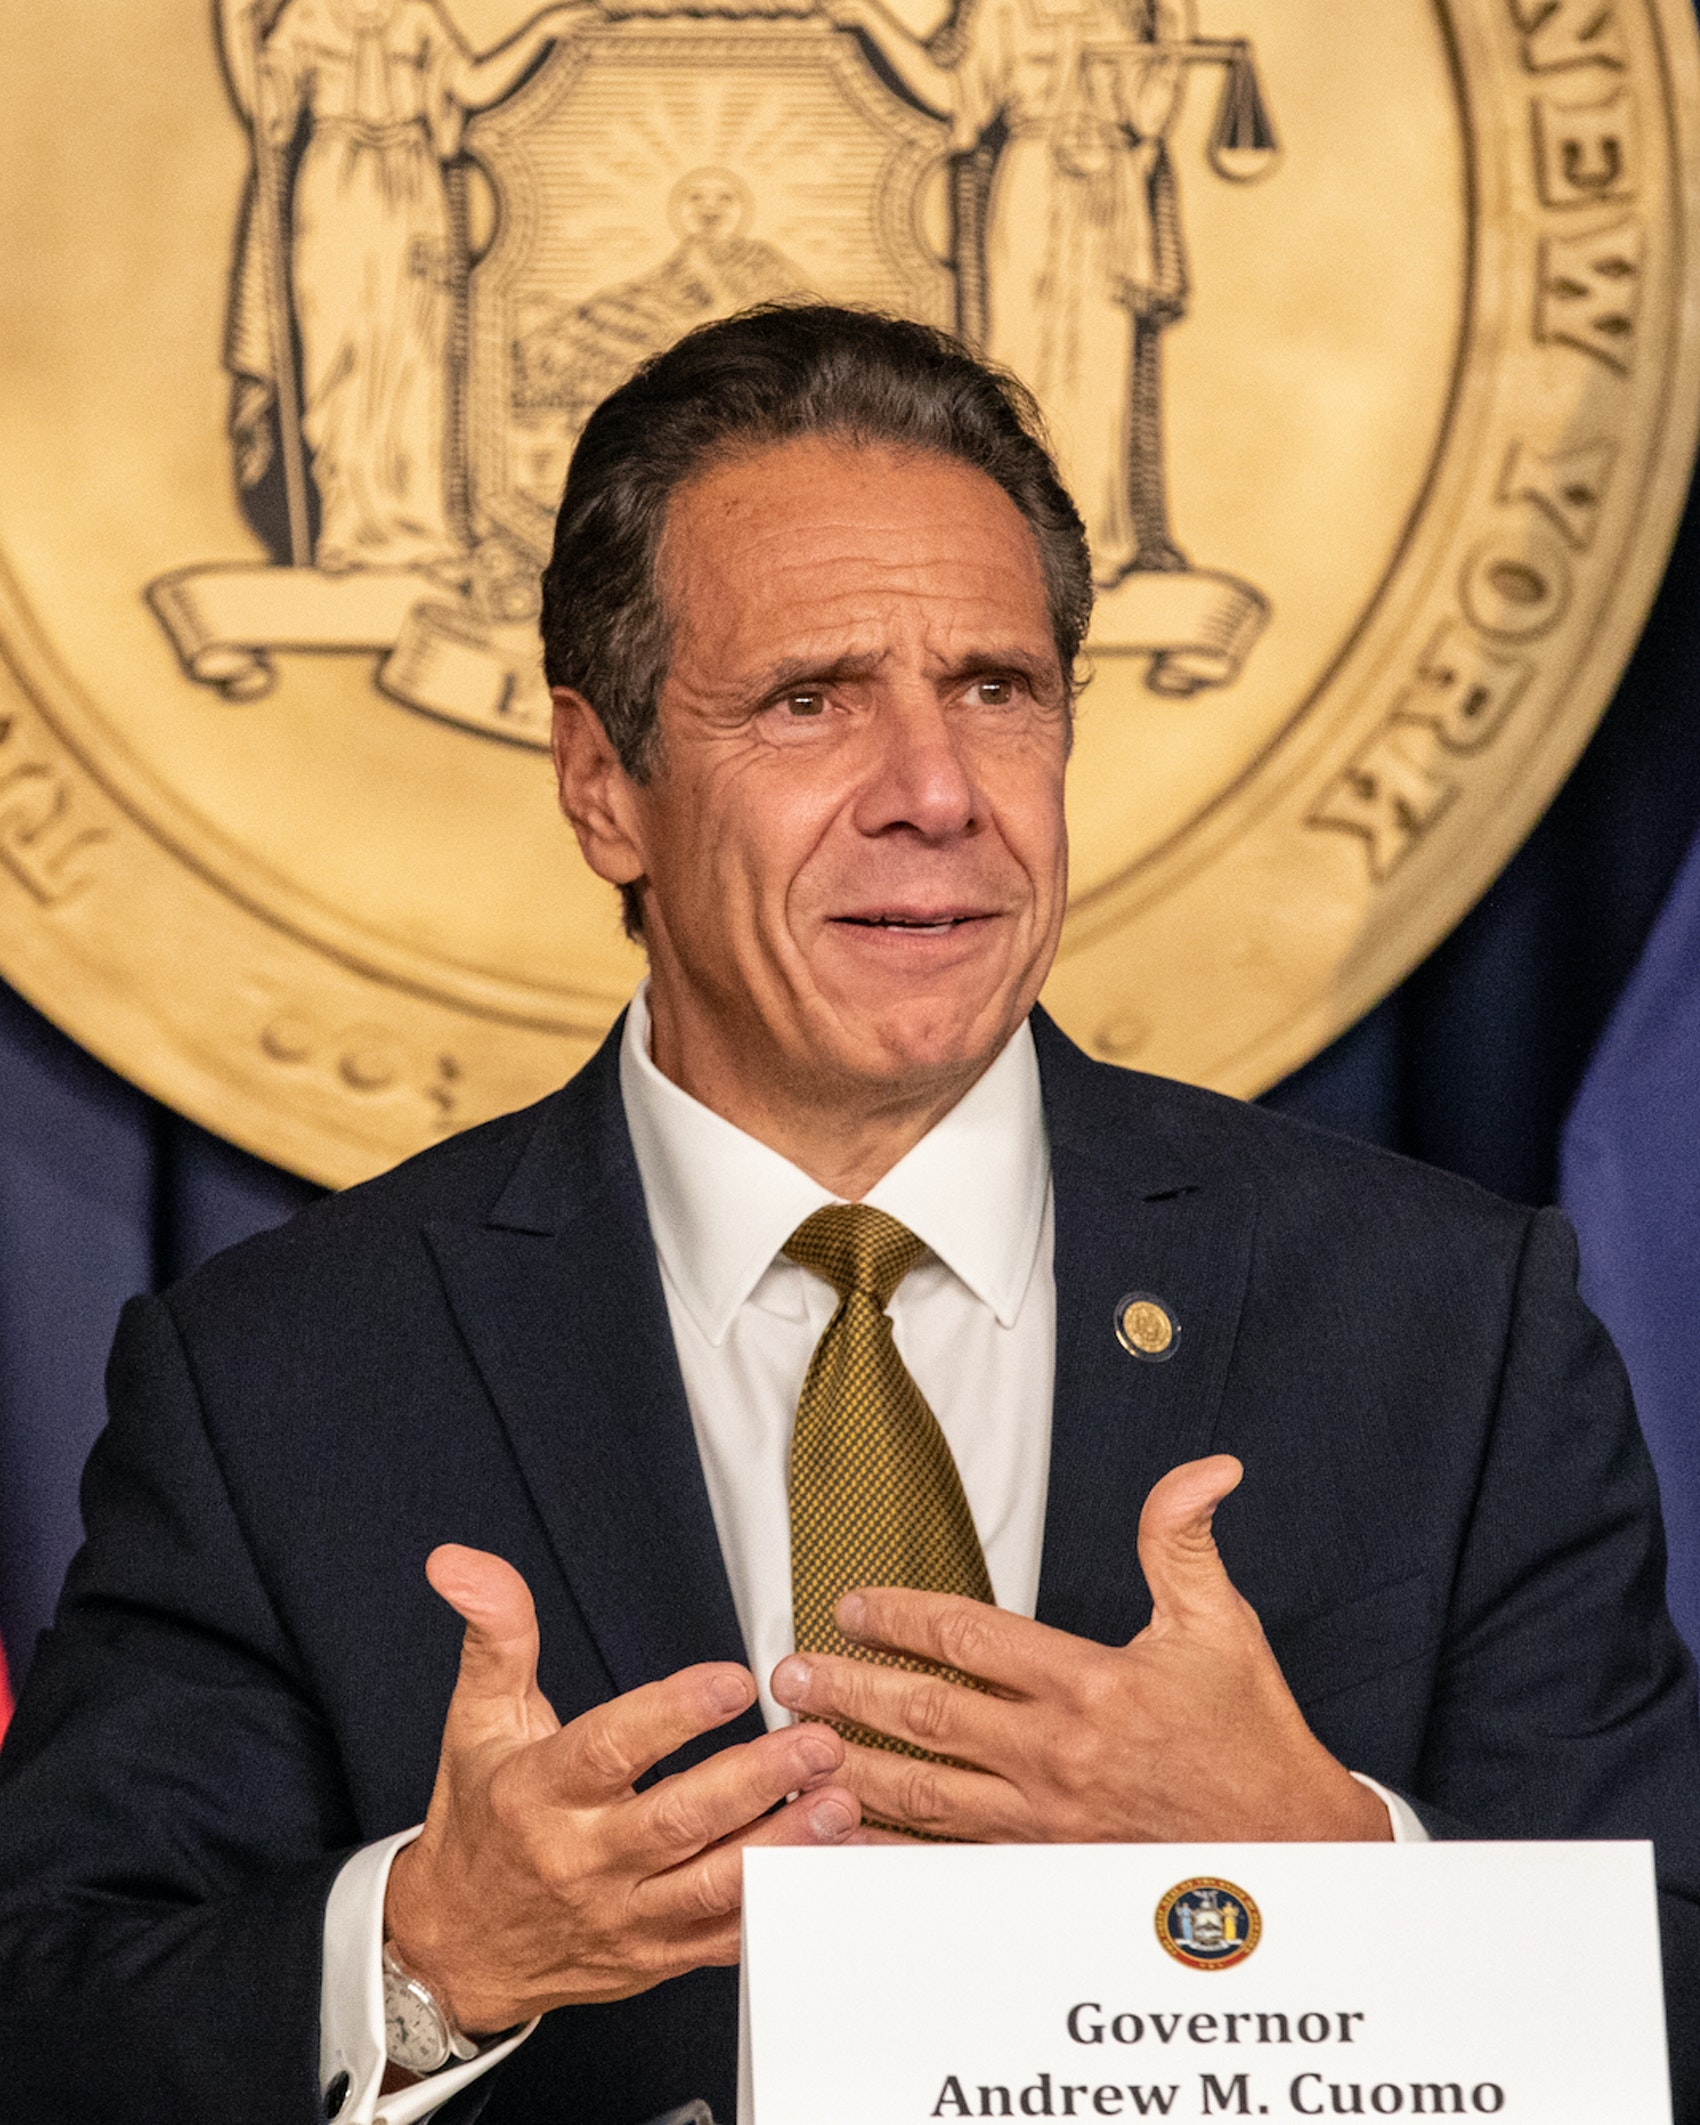 Andrew Cuomo, governor of New York, speaks during a news conference in New York, U.S., on Monday, Oct. 5, 2020. Governor Cuomo said New York City public and private schools in viral hot spots must close Tuesday, and he threatened to shut religious institutions if members don't follow rules about masks and social distancing. Photographer: Jeenah Moon/Bloomberg